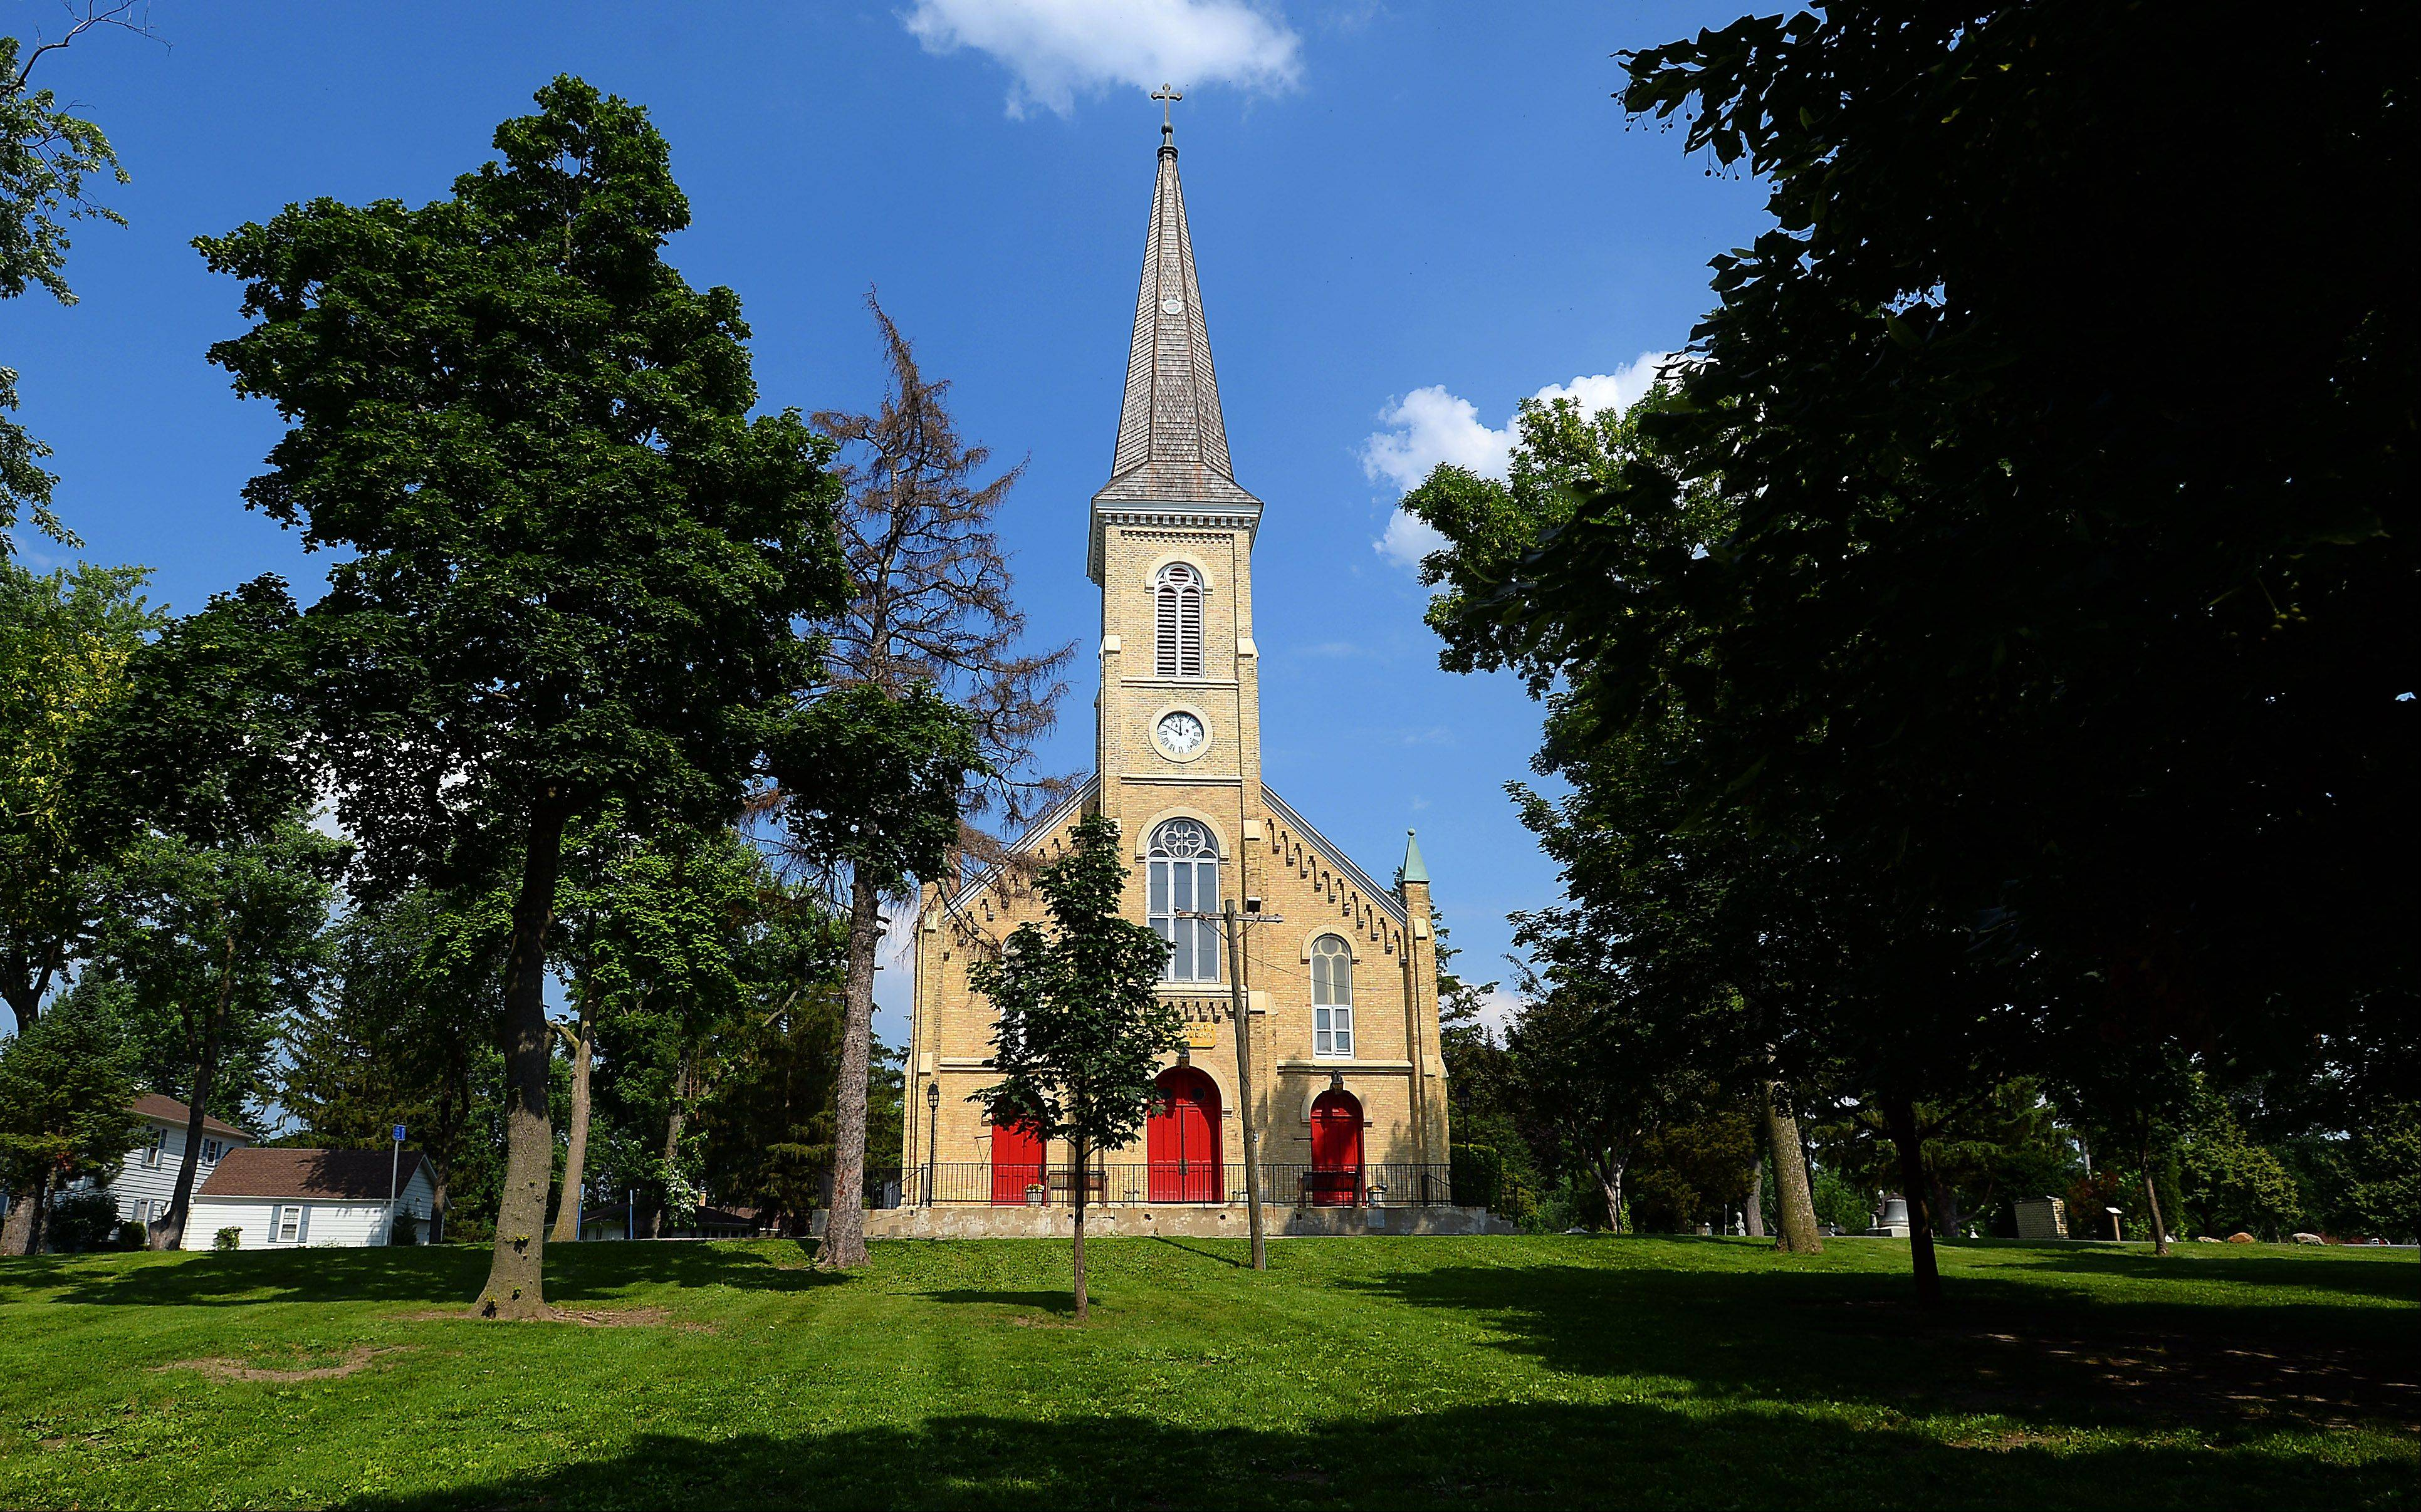 Schaumburg plans to issue a landscaping grant to St. Peter Lutheran Church to help resolve a dispute with its neighbors by installing more screening landscaping.